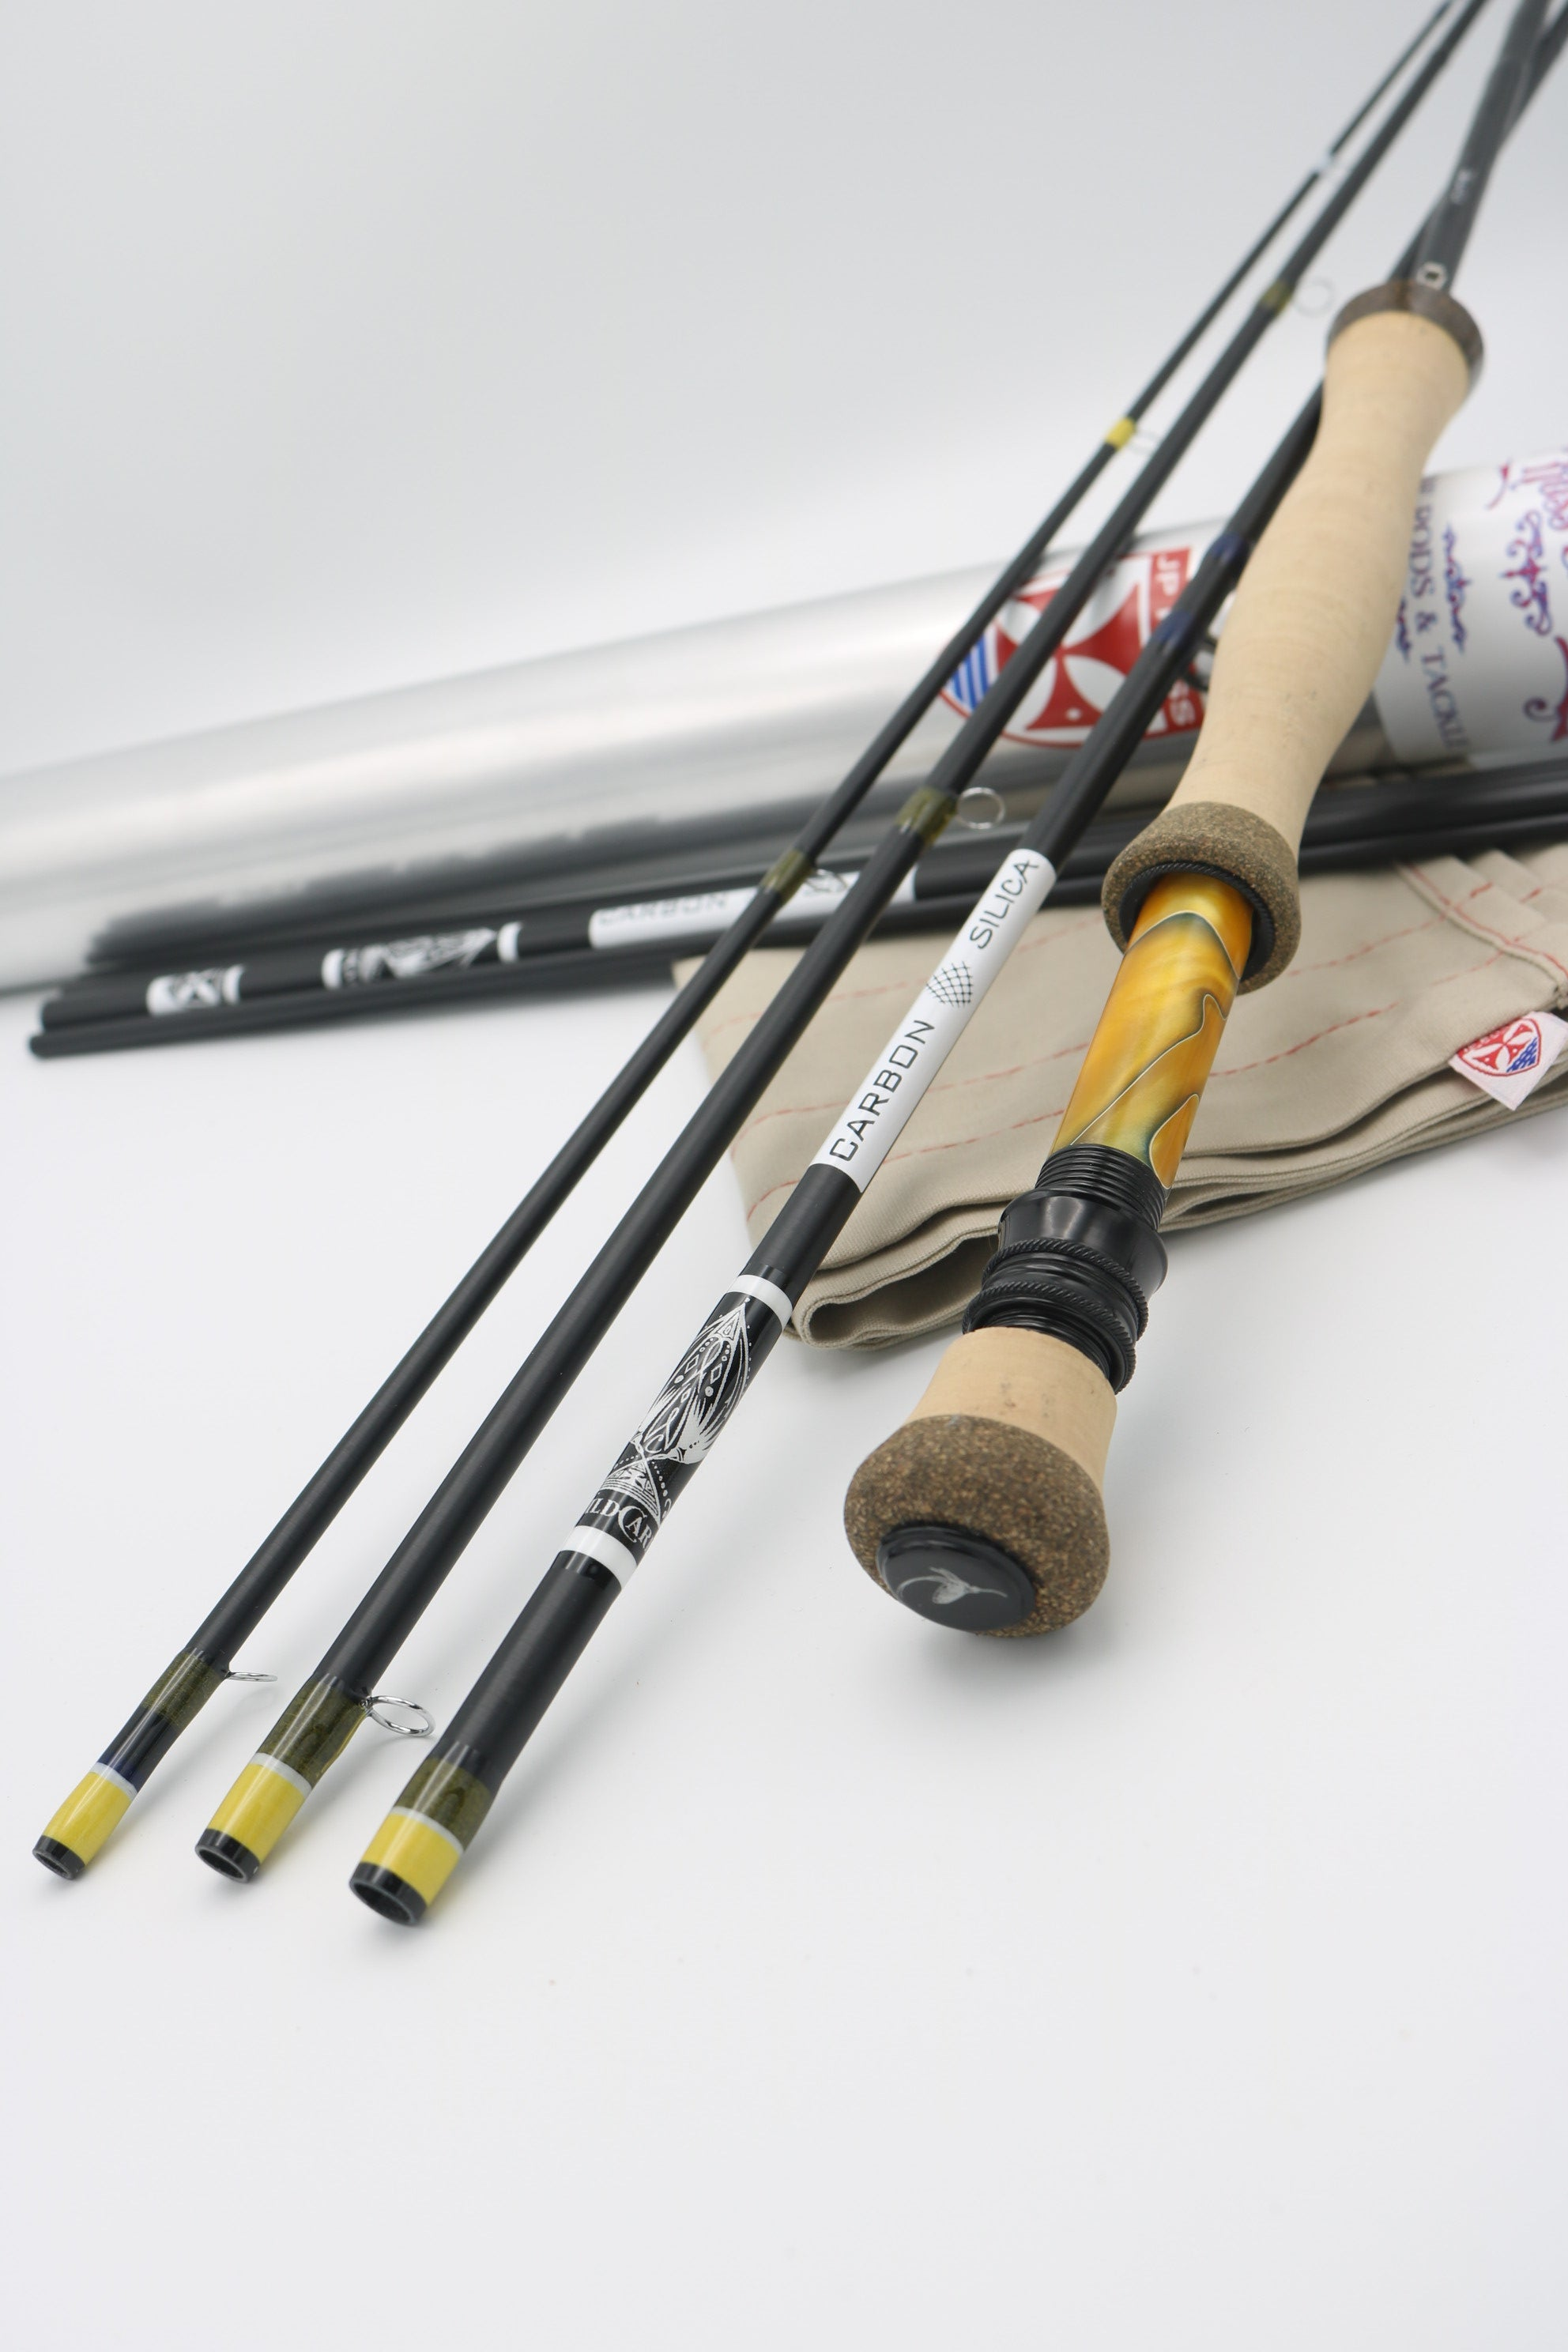 7 foot 5 wt 4 pc WILD CARD Carbon & Glass Hybrid fly rod